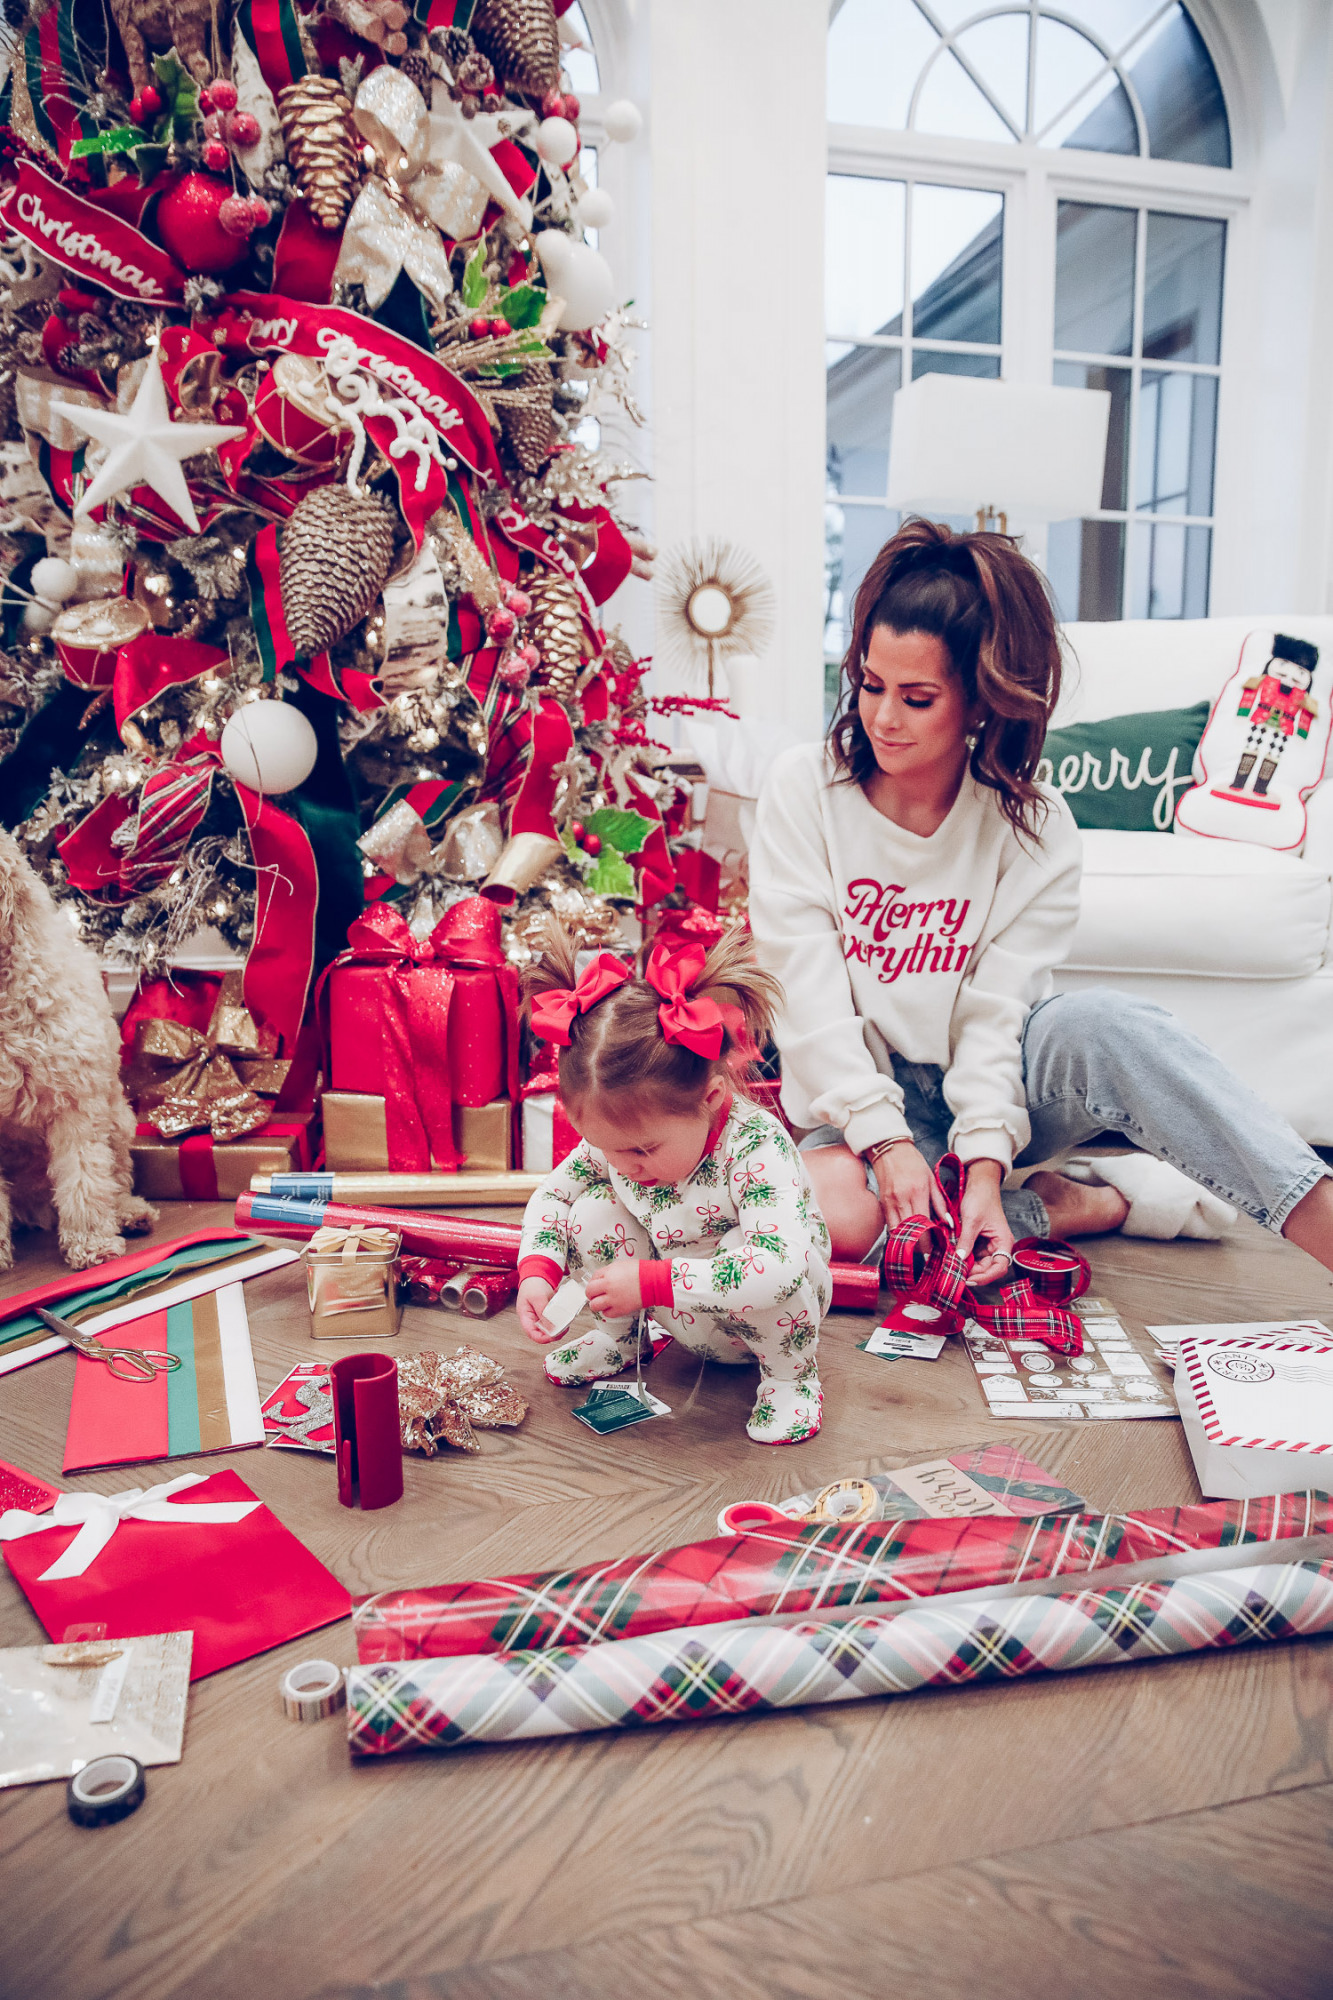 walmart gift wrap christmas 2020, shop hello holidays christmas tree, magnetic me PJs, emily ann gemma-10 |Gift Wrapping Ideas by popular US life and style blog, The Sweetest Thing: image of a woman wearing a Merry Everything sweatshirt and her daughter wearing Magnetic Me Christmas pjs and sitting on the floor in front of their Christmas tree and next to Christmas wrapping paper supplies.